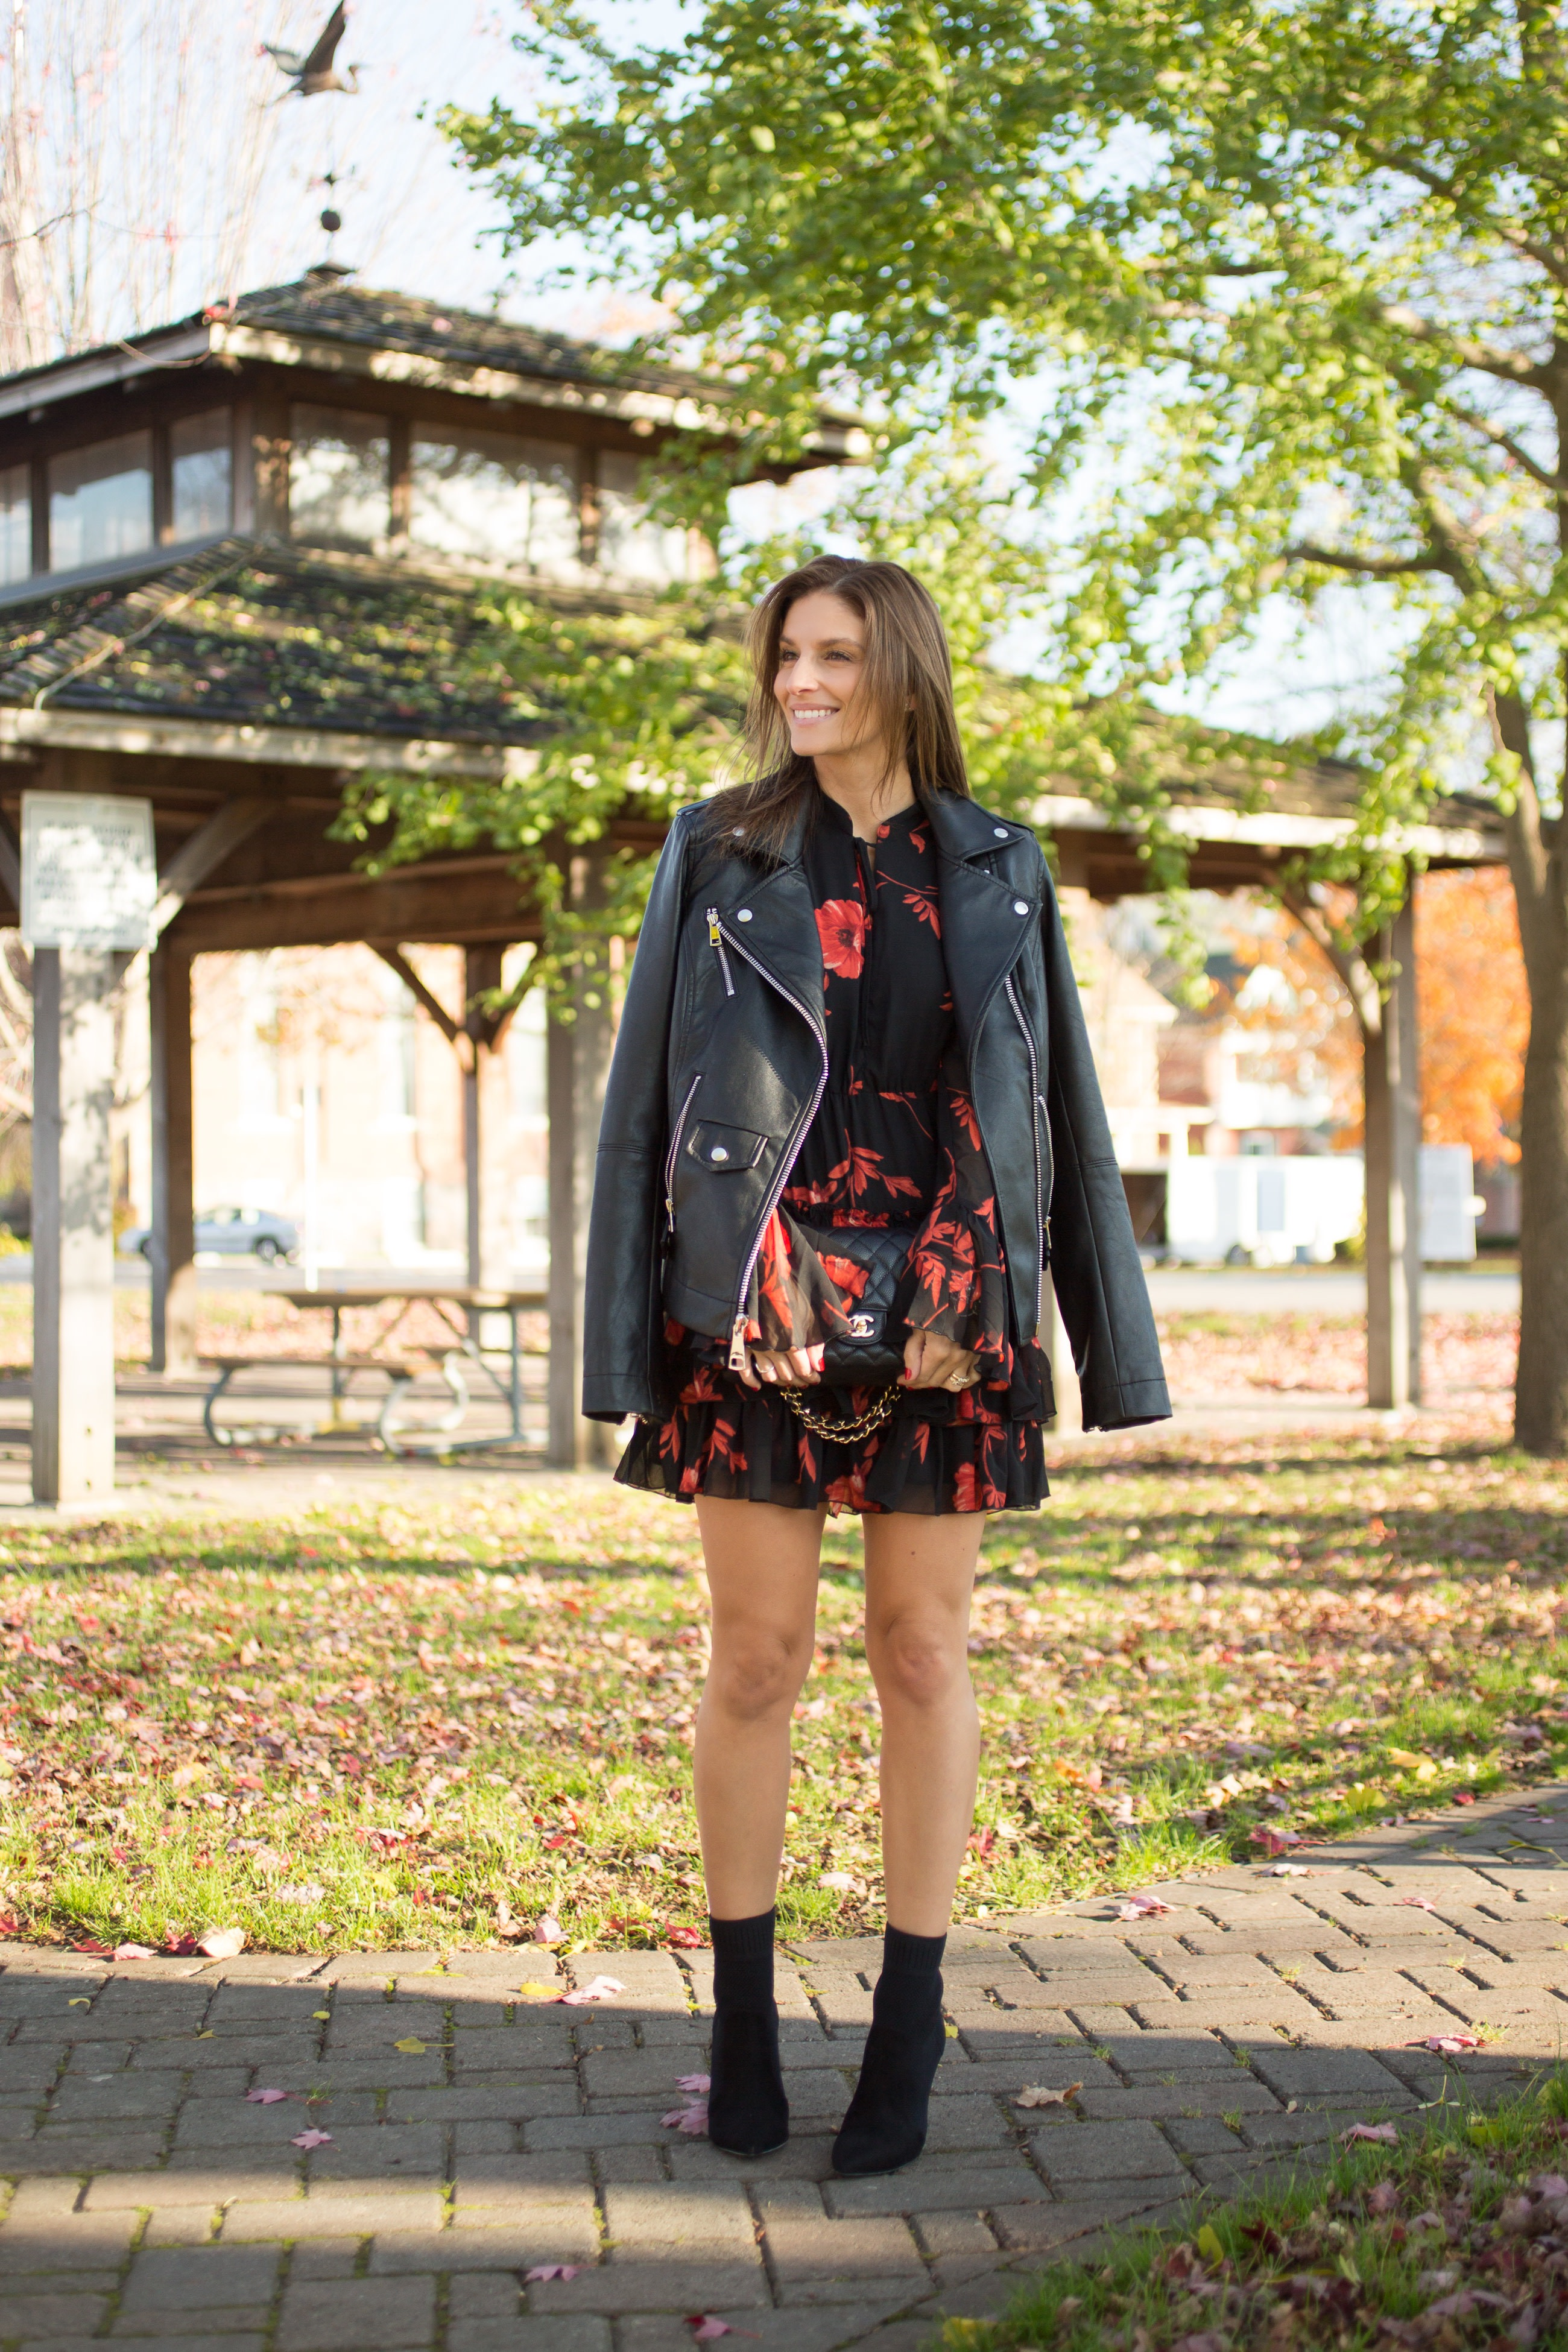 Floral dress for fall with leather jacket and pointed toe ankle boots Scarborough Town Centre sparkleshinylove Mandy Furnis